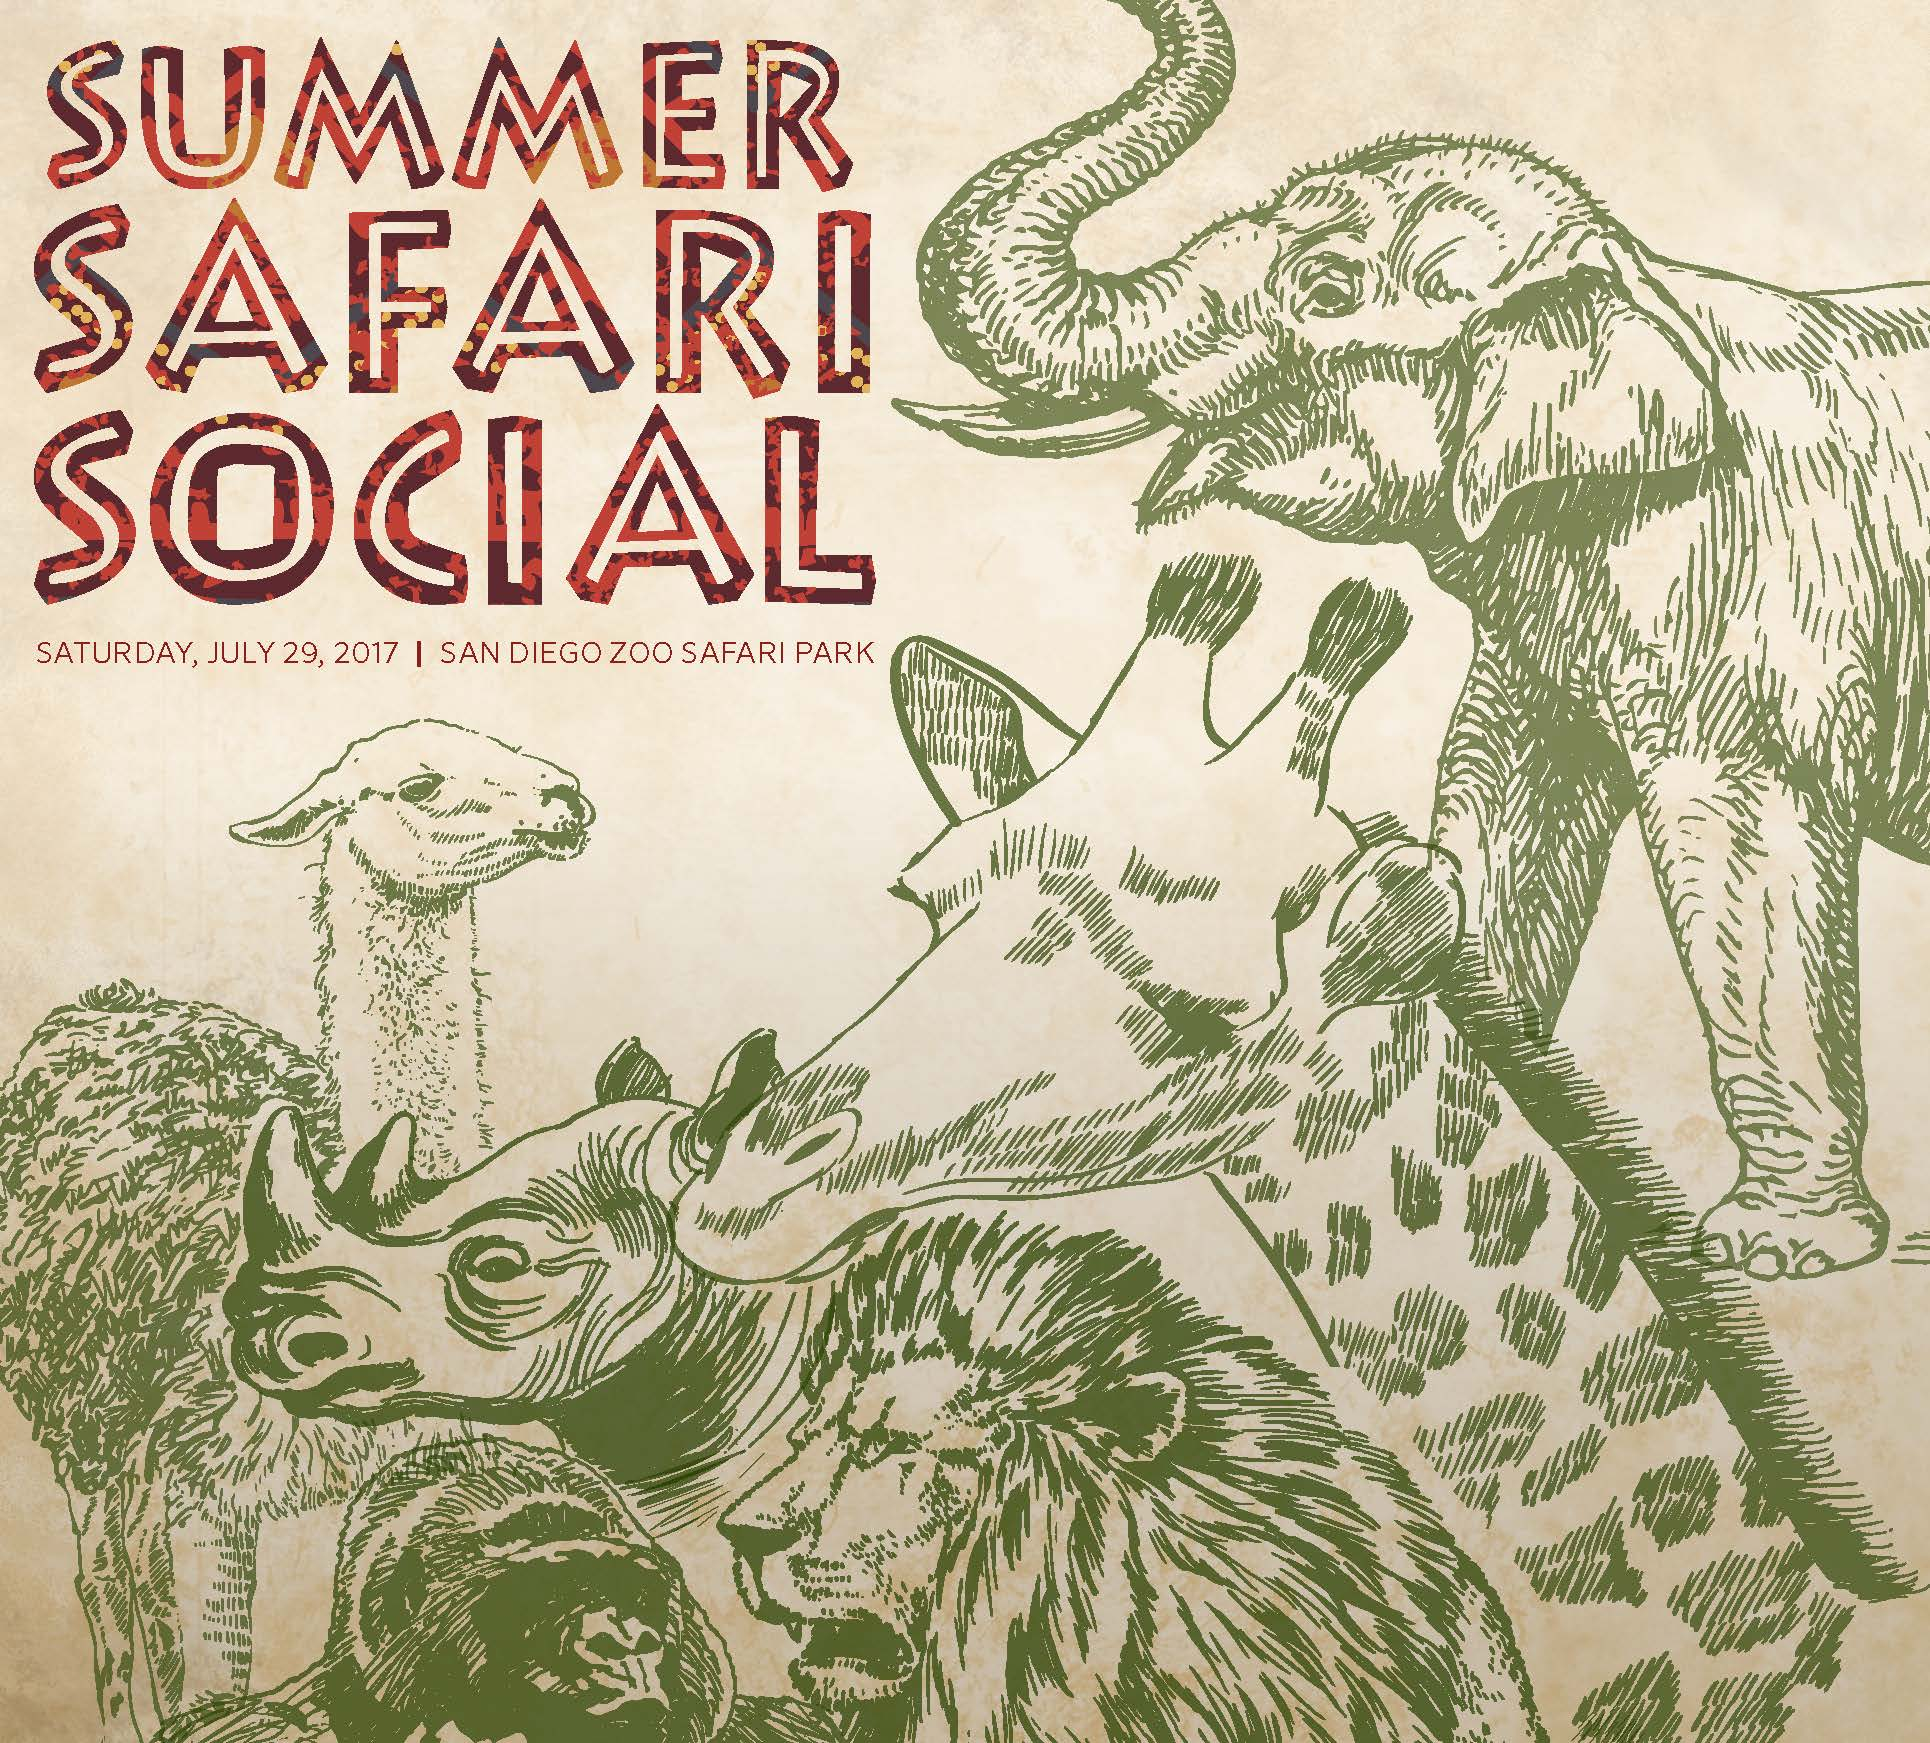 Hunter's Summer Safari Social 2017